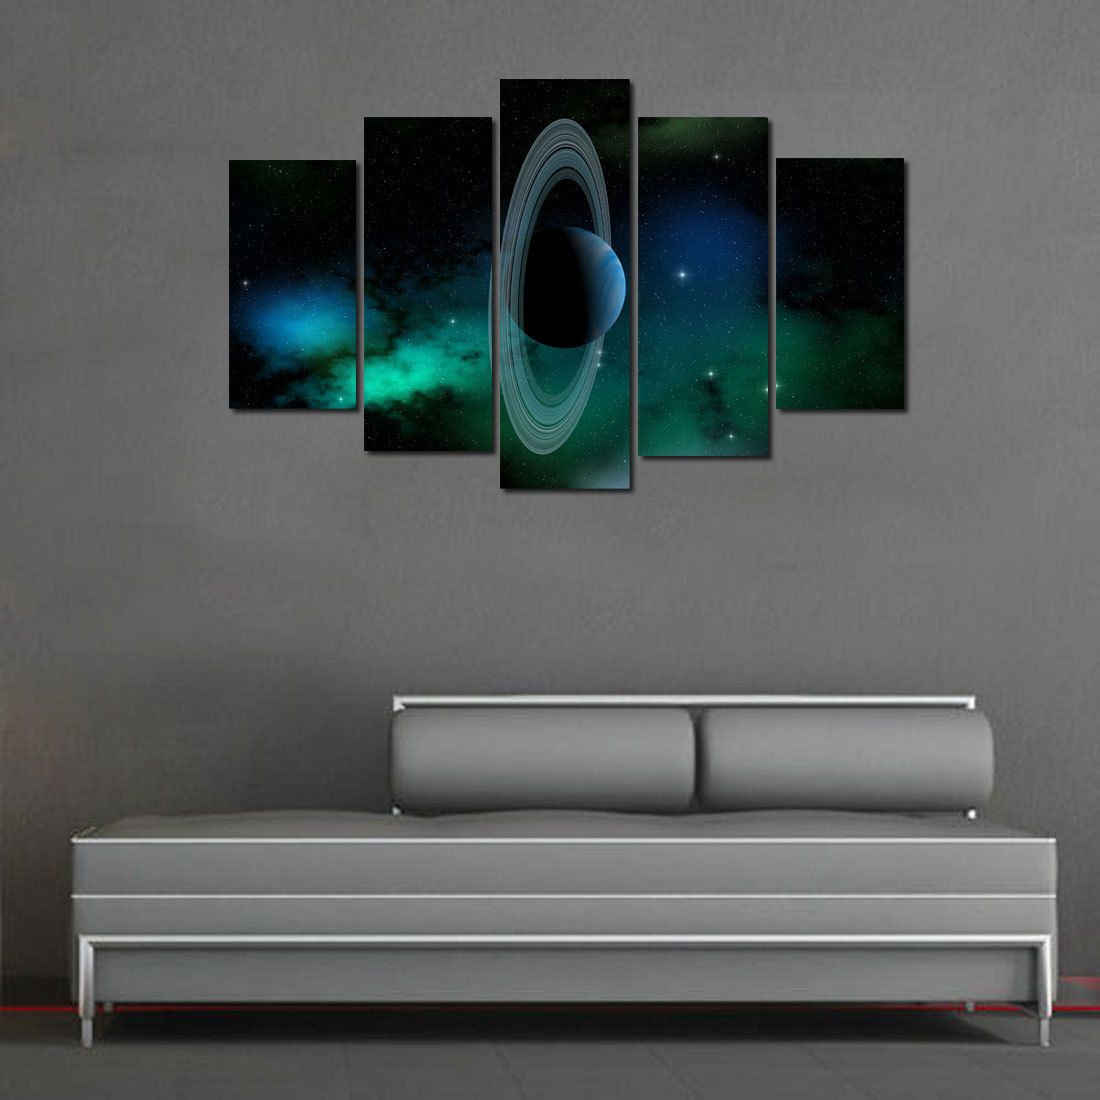 Oil painting hd print on canvas modern dec wall art the moon and the